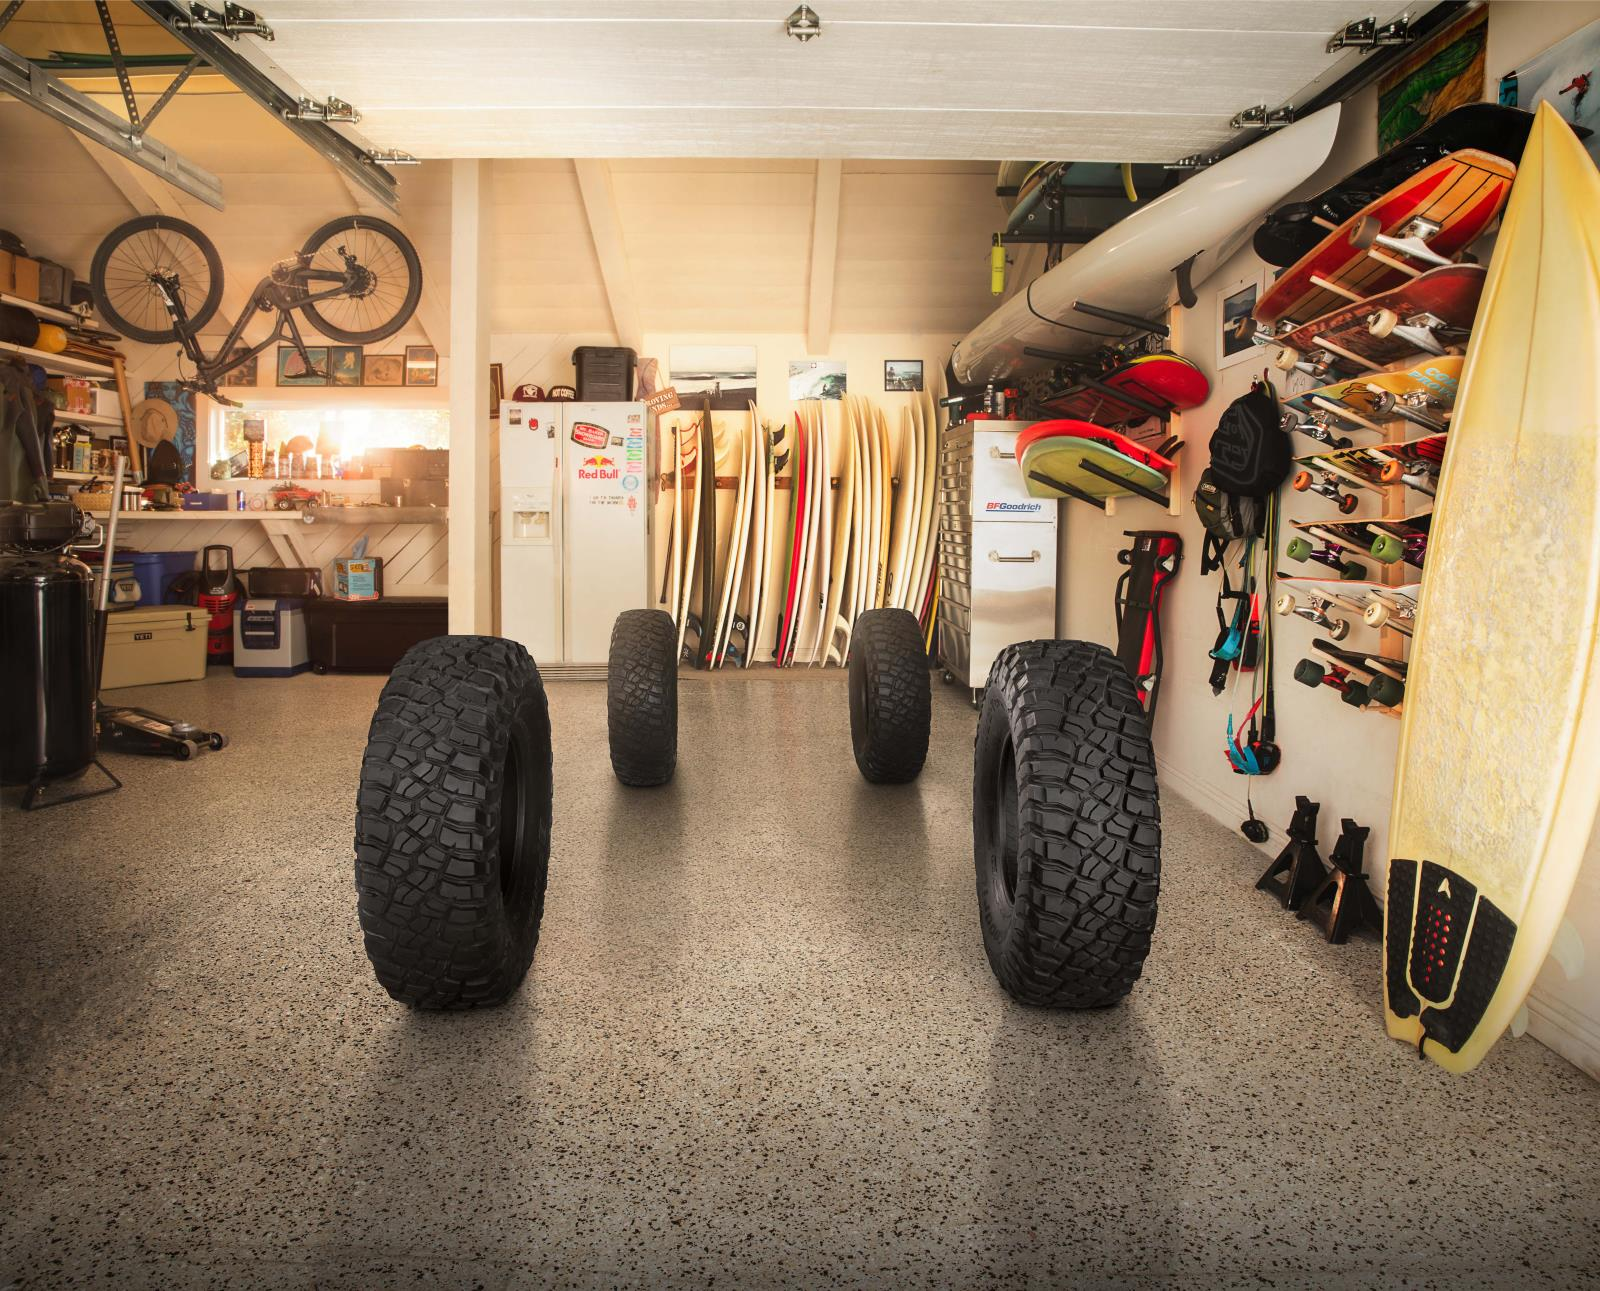 BFG_KM3_Surf_Garage_FINAL.jpg